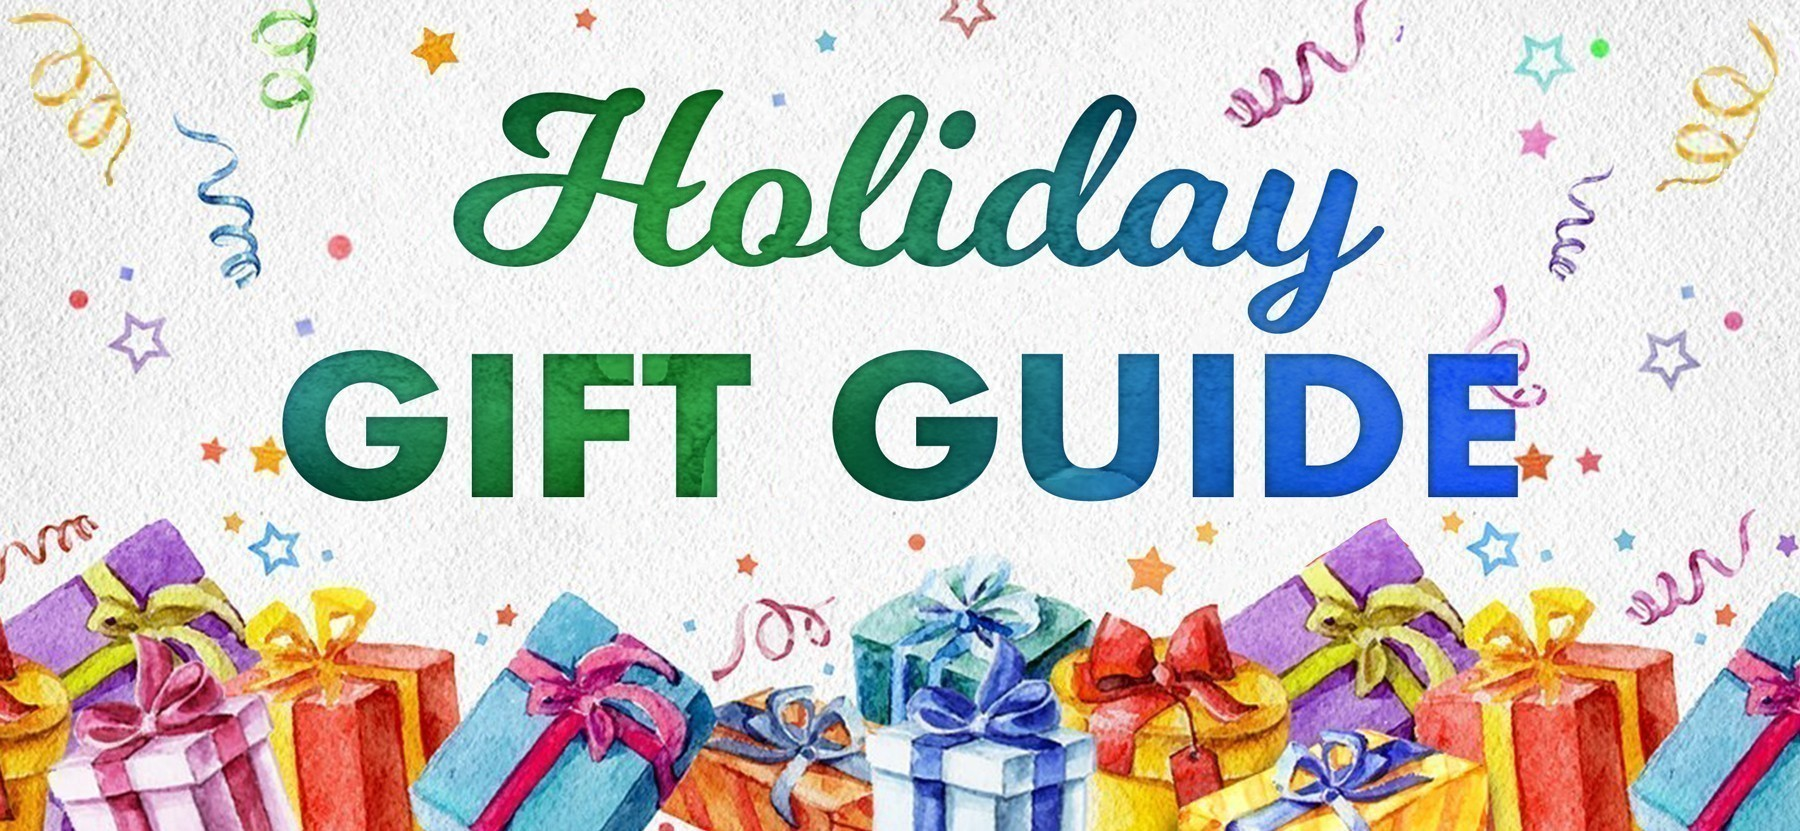 U.S. Games Systems, Inc. > 2018 Holiday Gift Guide